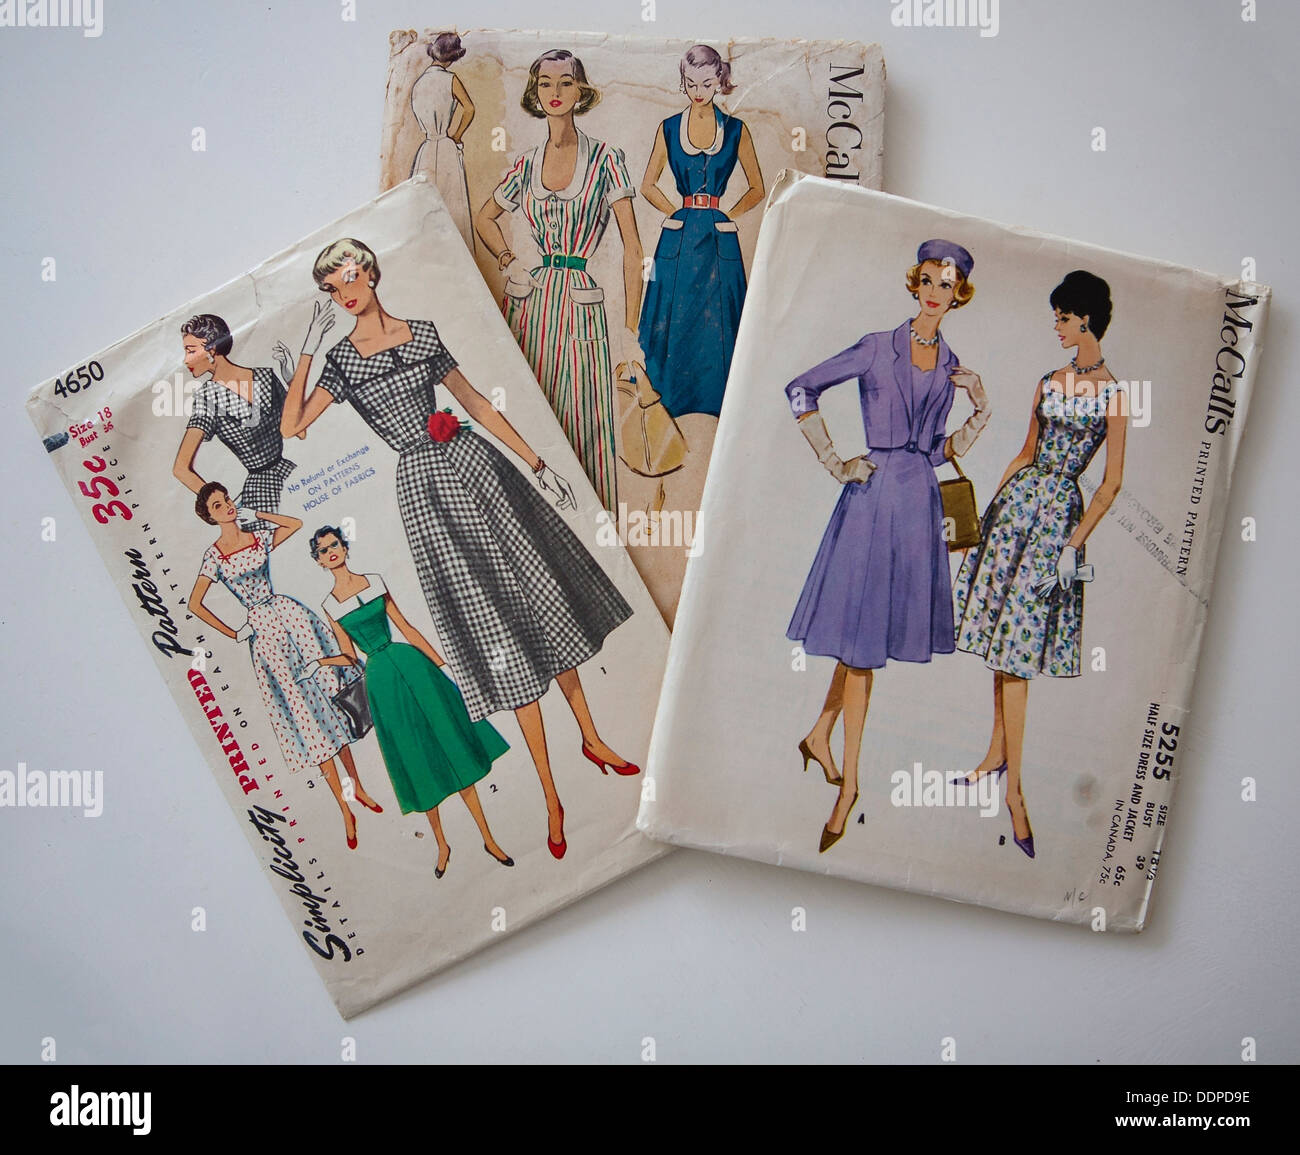 Collection of 3 vintage dress sewing patterns - Stock Image